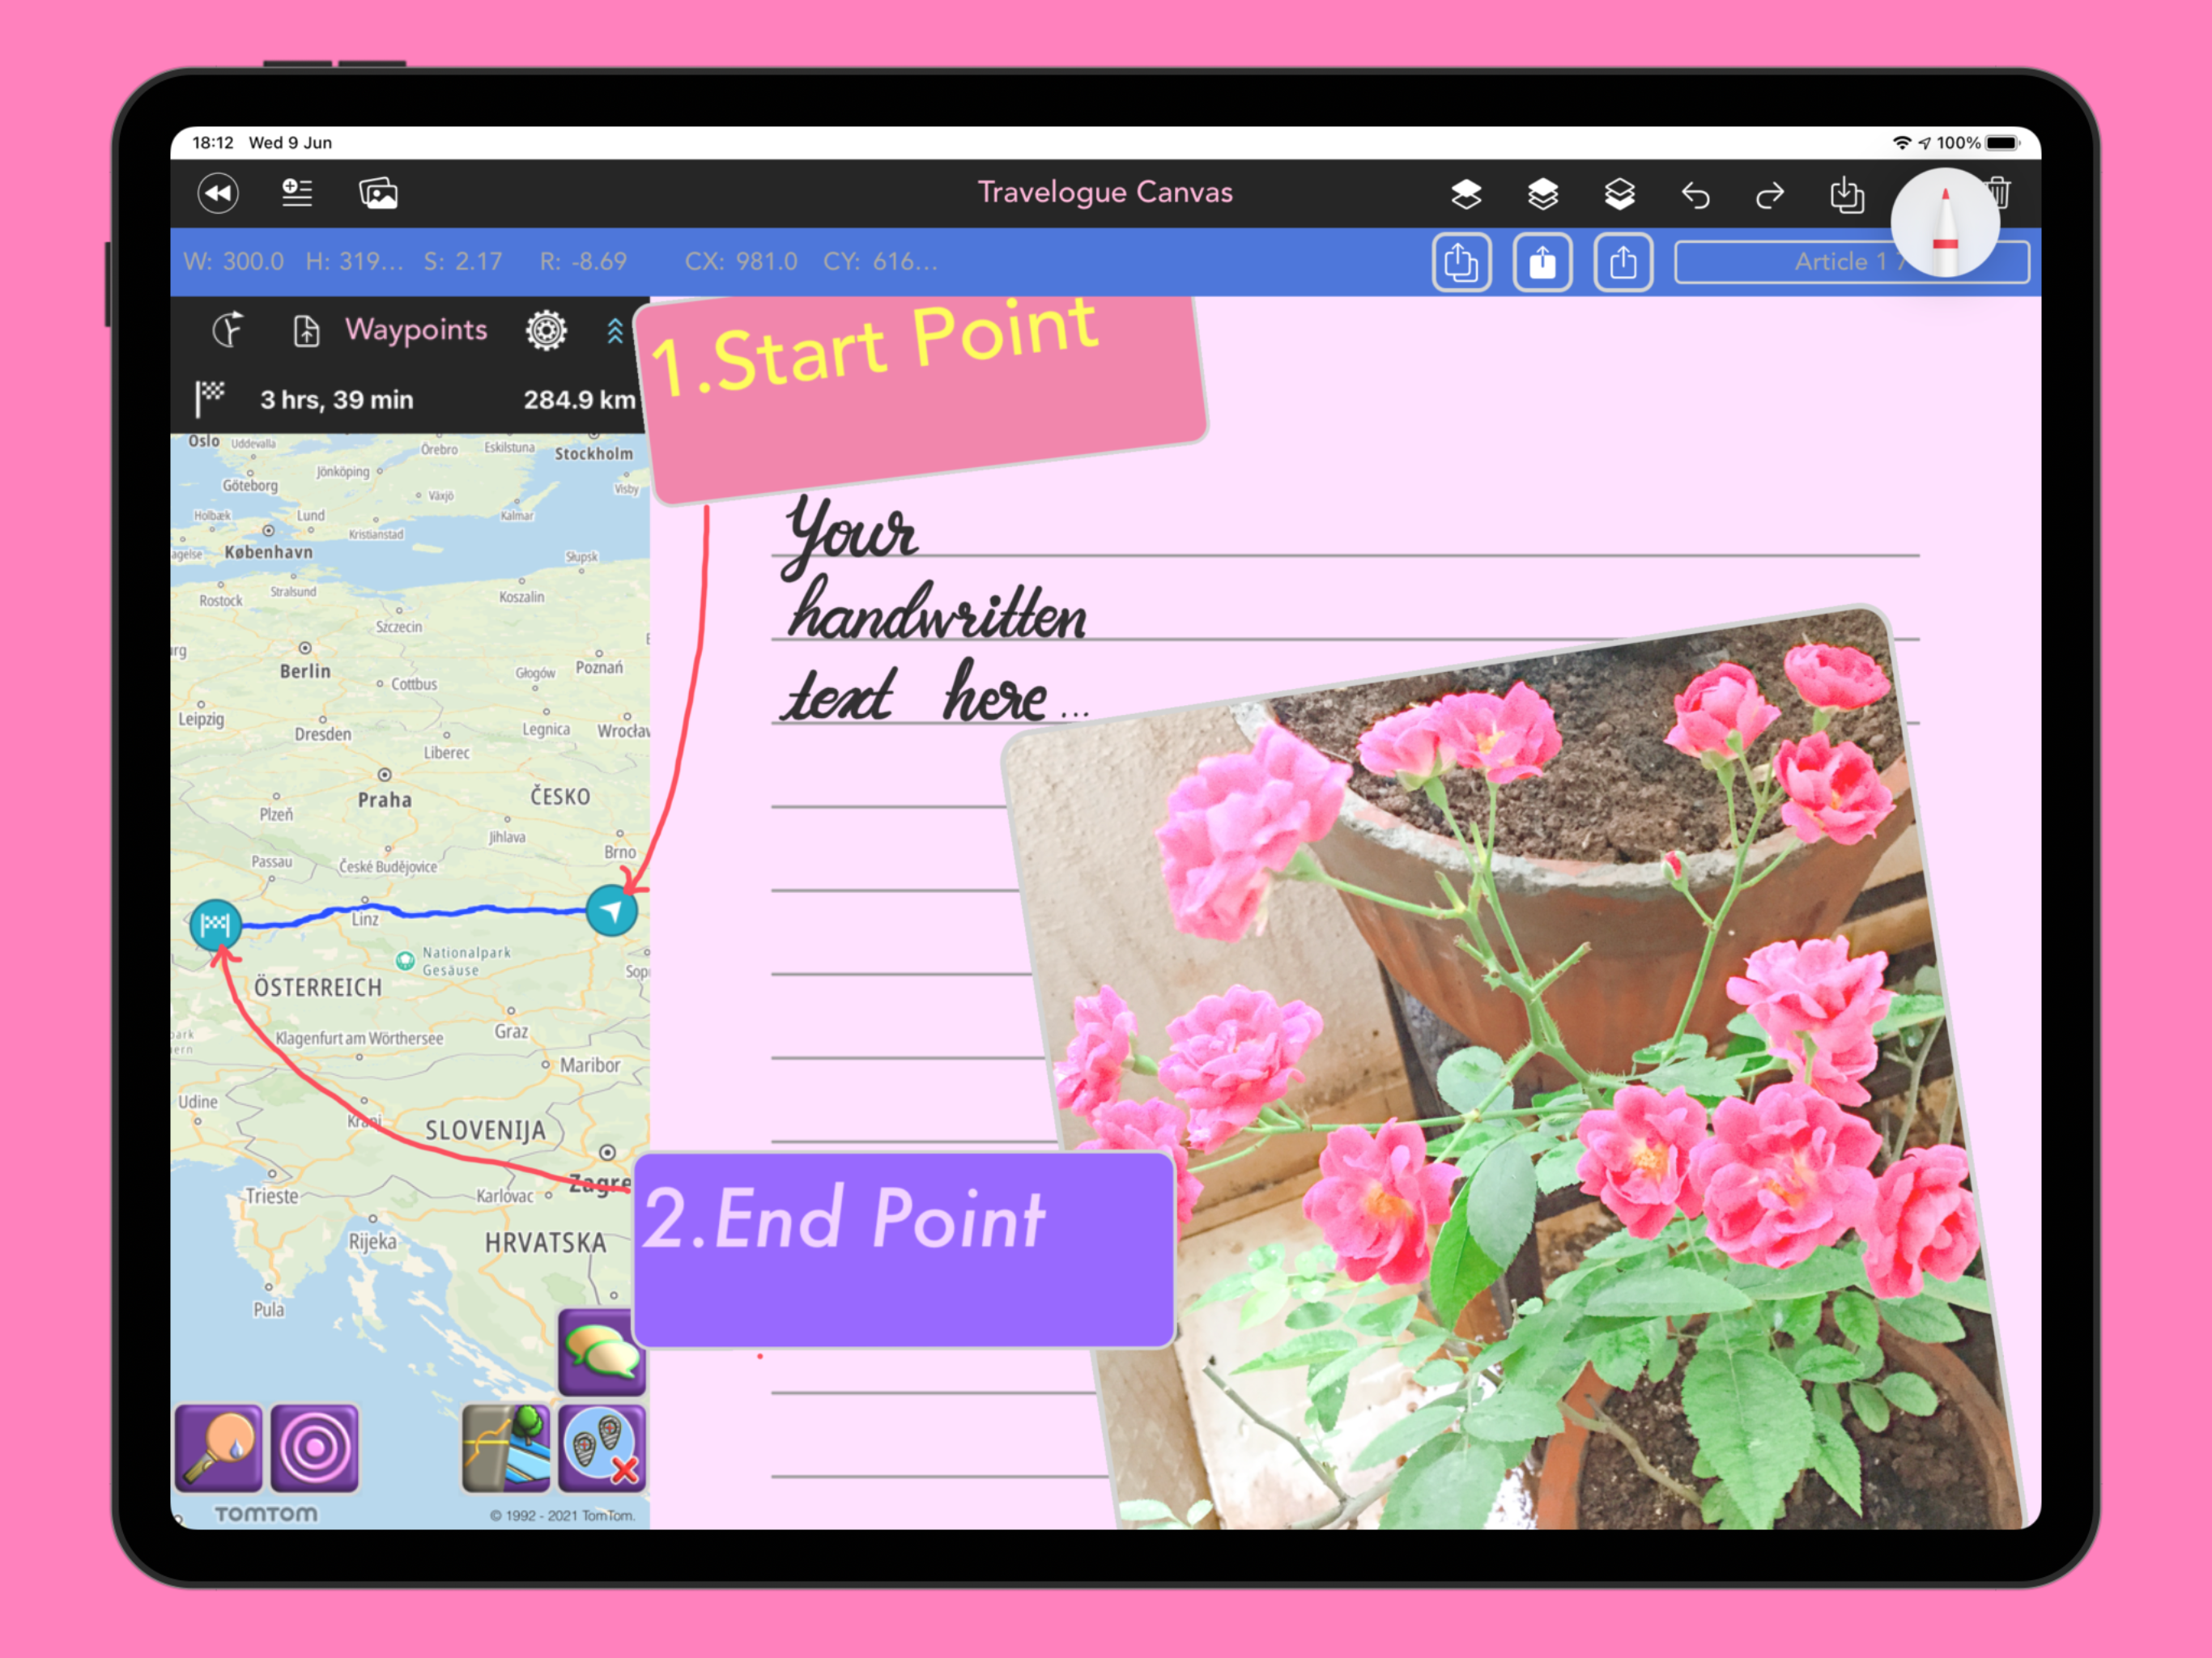 Travelogue canvas showing map, sample handwritten text, and floating image and text panels